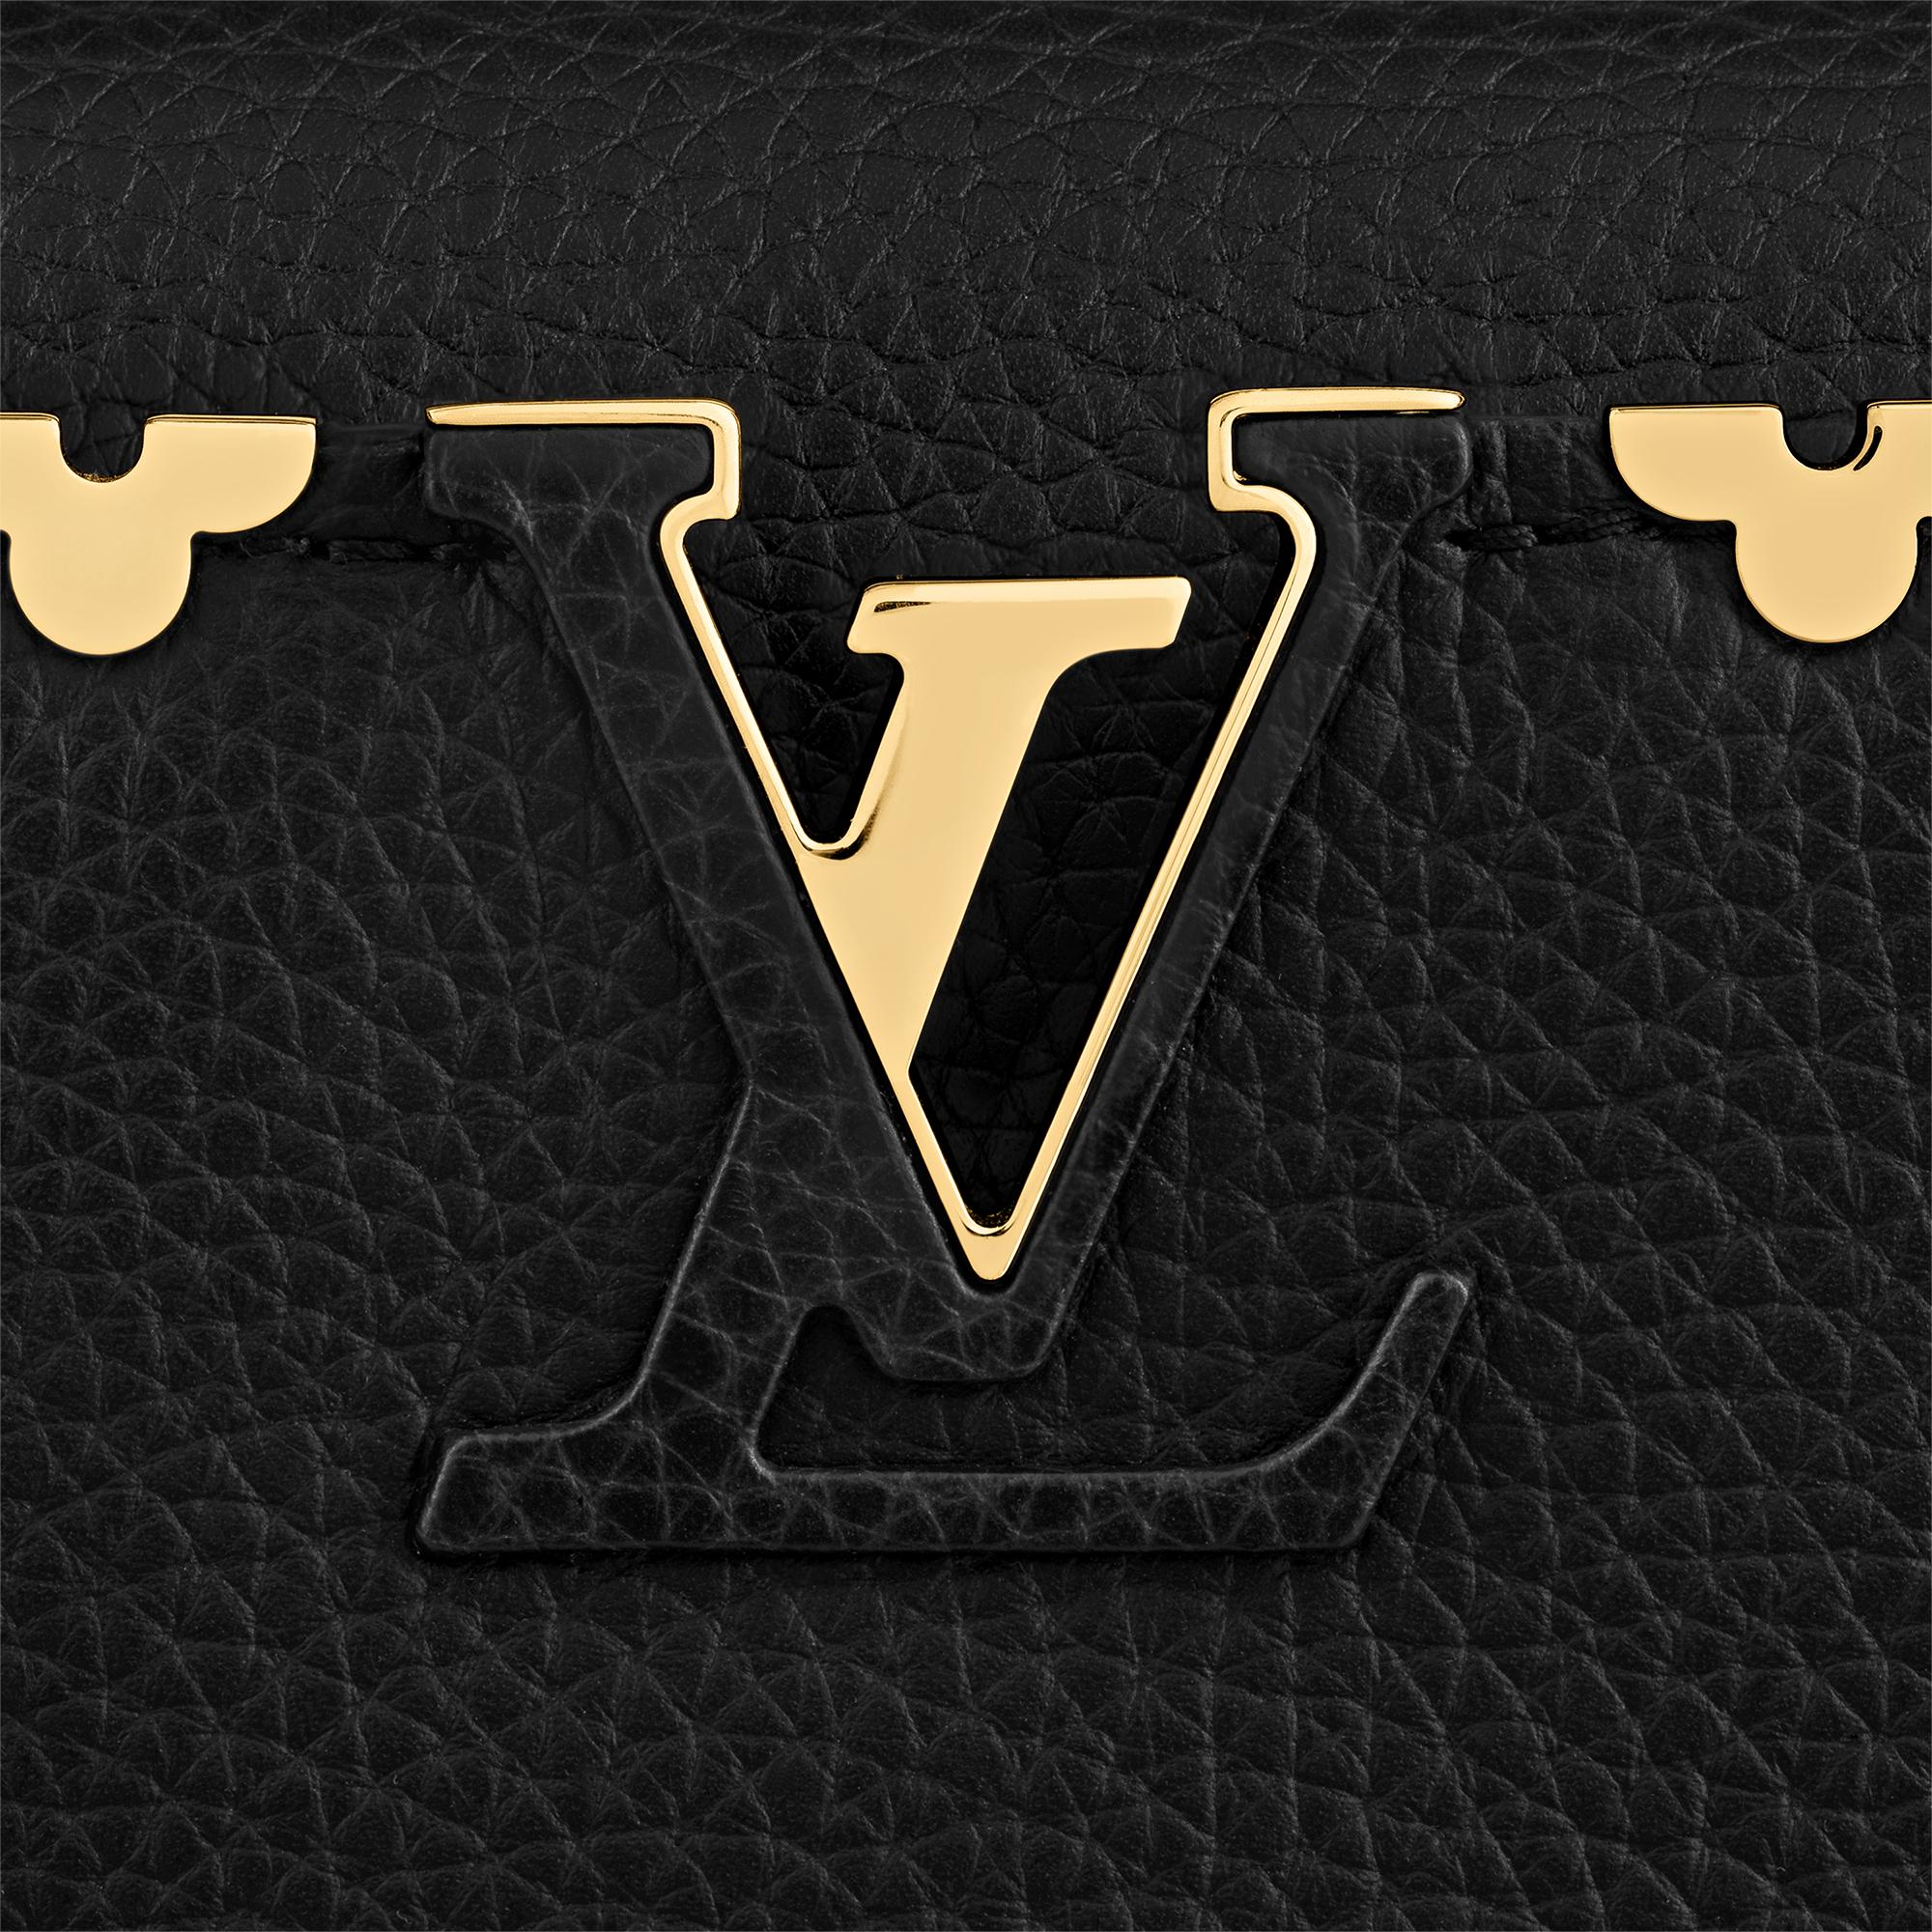 유럽직배송 루이비통 LOUIS VUITTON Capucines Mini M56669